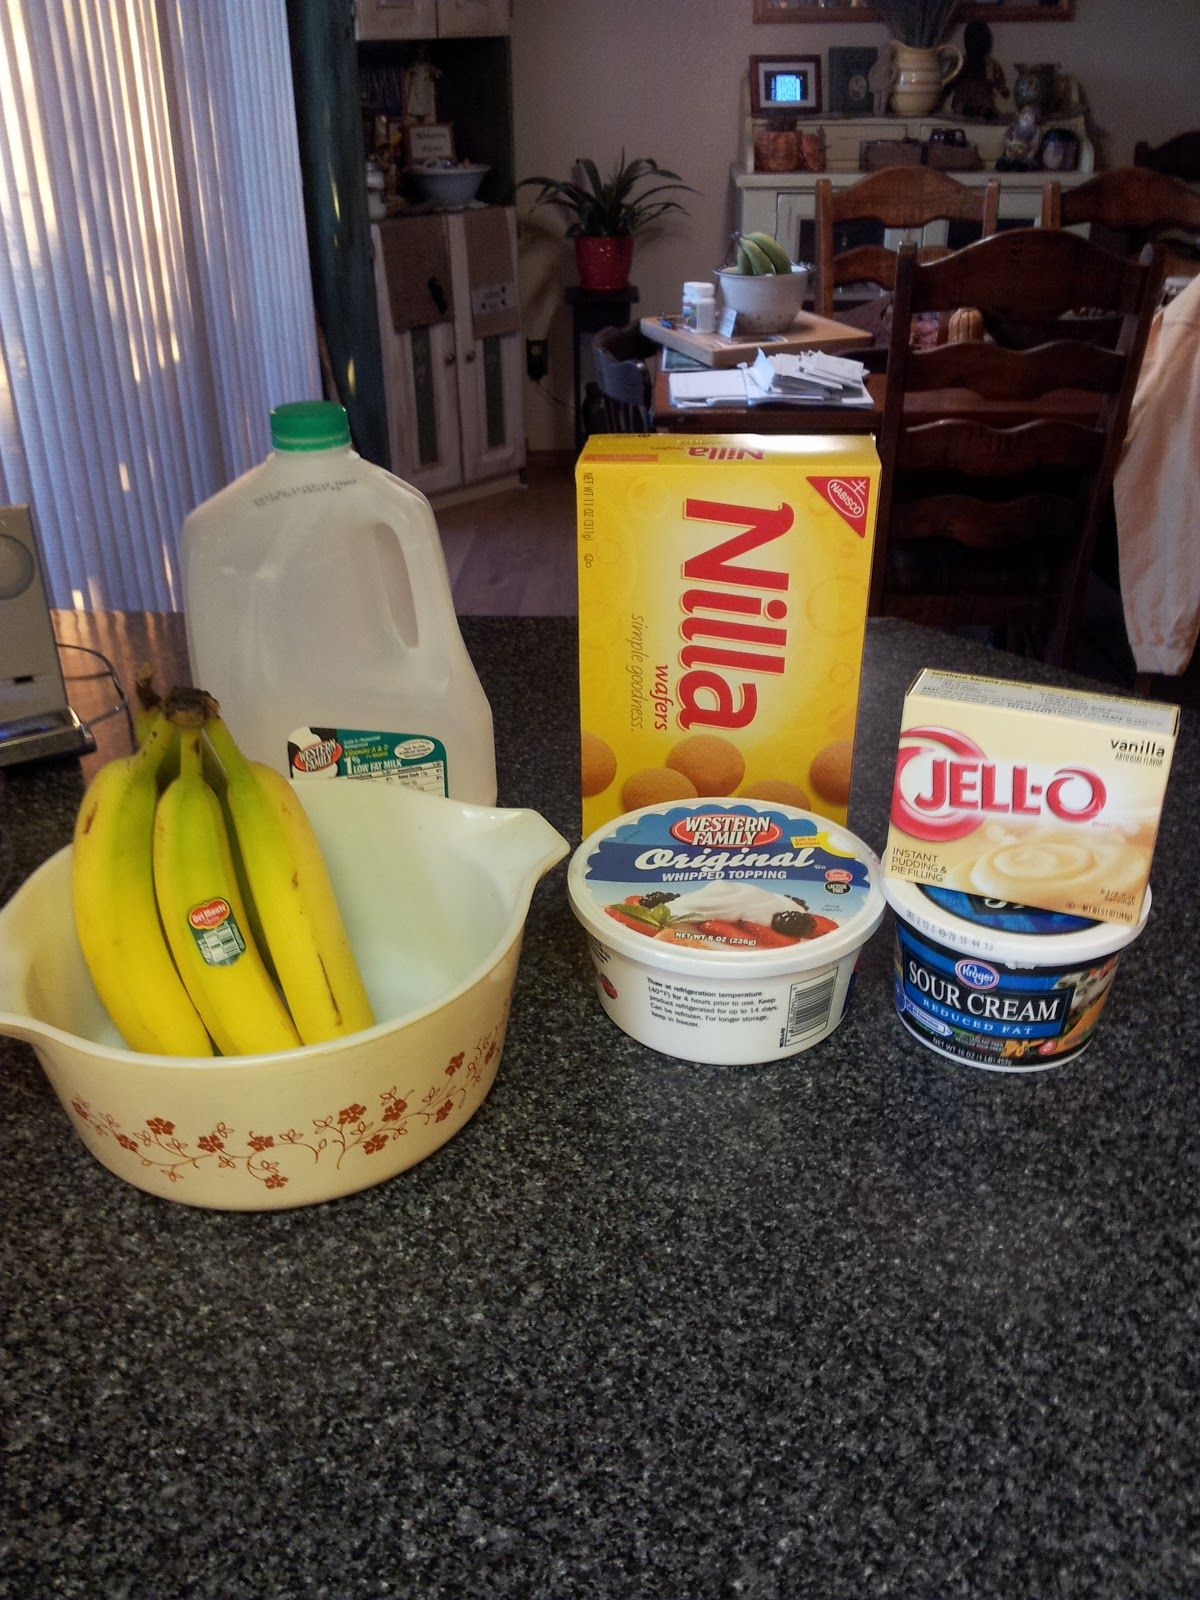 This is the best banana pudding recipe ever. I've used it for years, had it written down on a napkin from the first time I tasted it at someone's house! I am always asked for recipe when I take this to pot lucks :-) #bananapudding